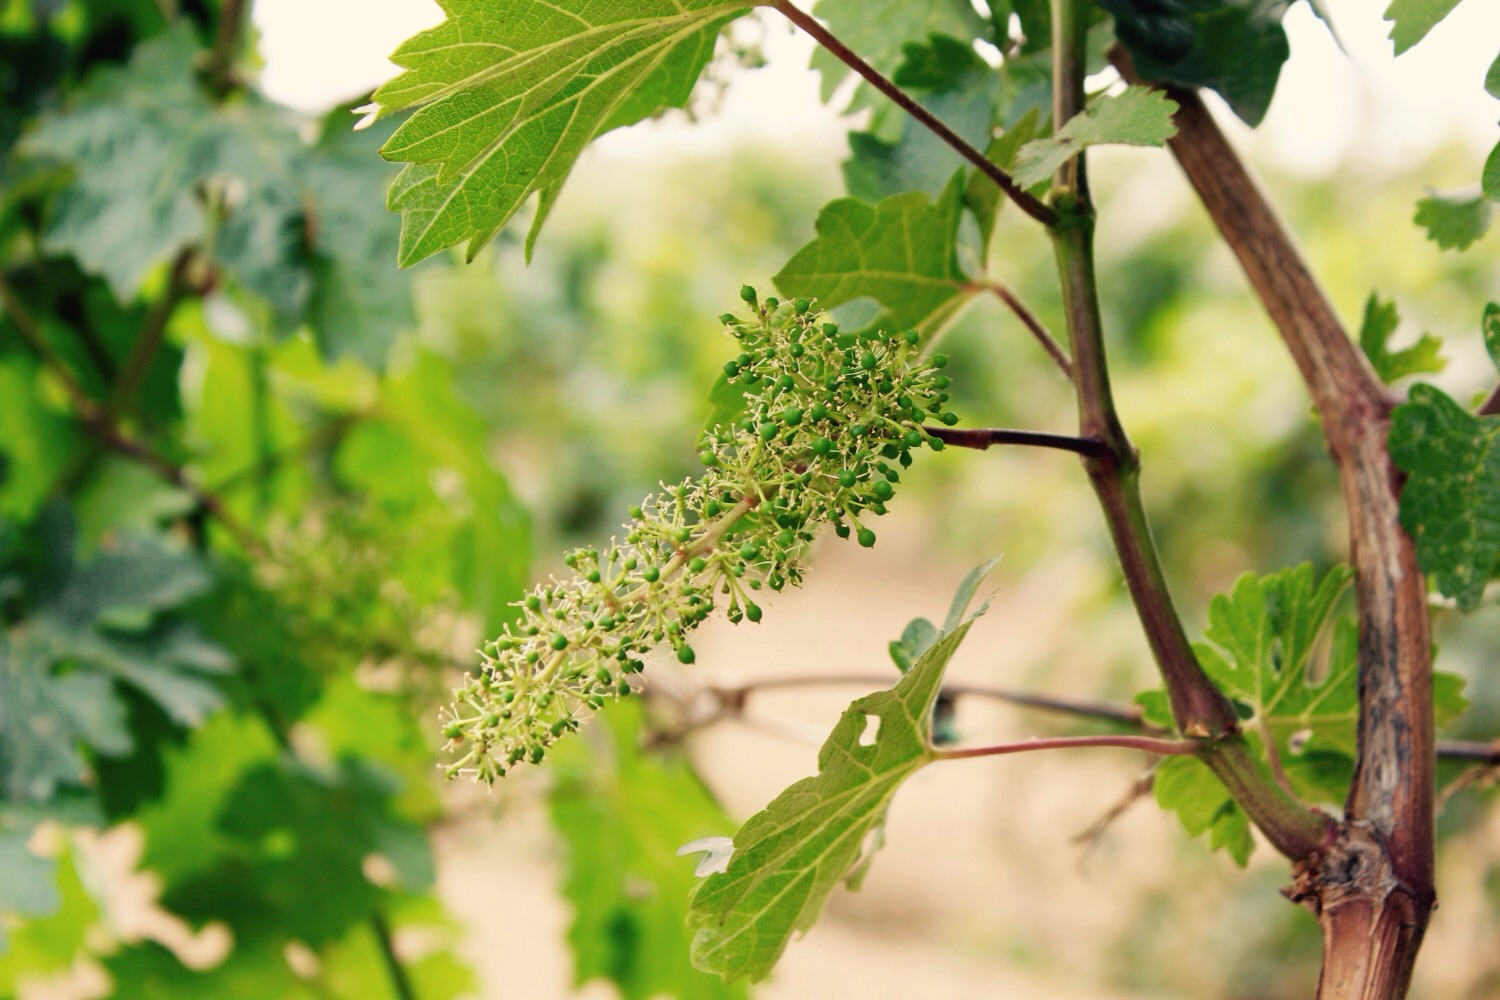 Grapes growing in Grace Vineyard